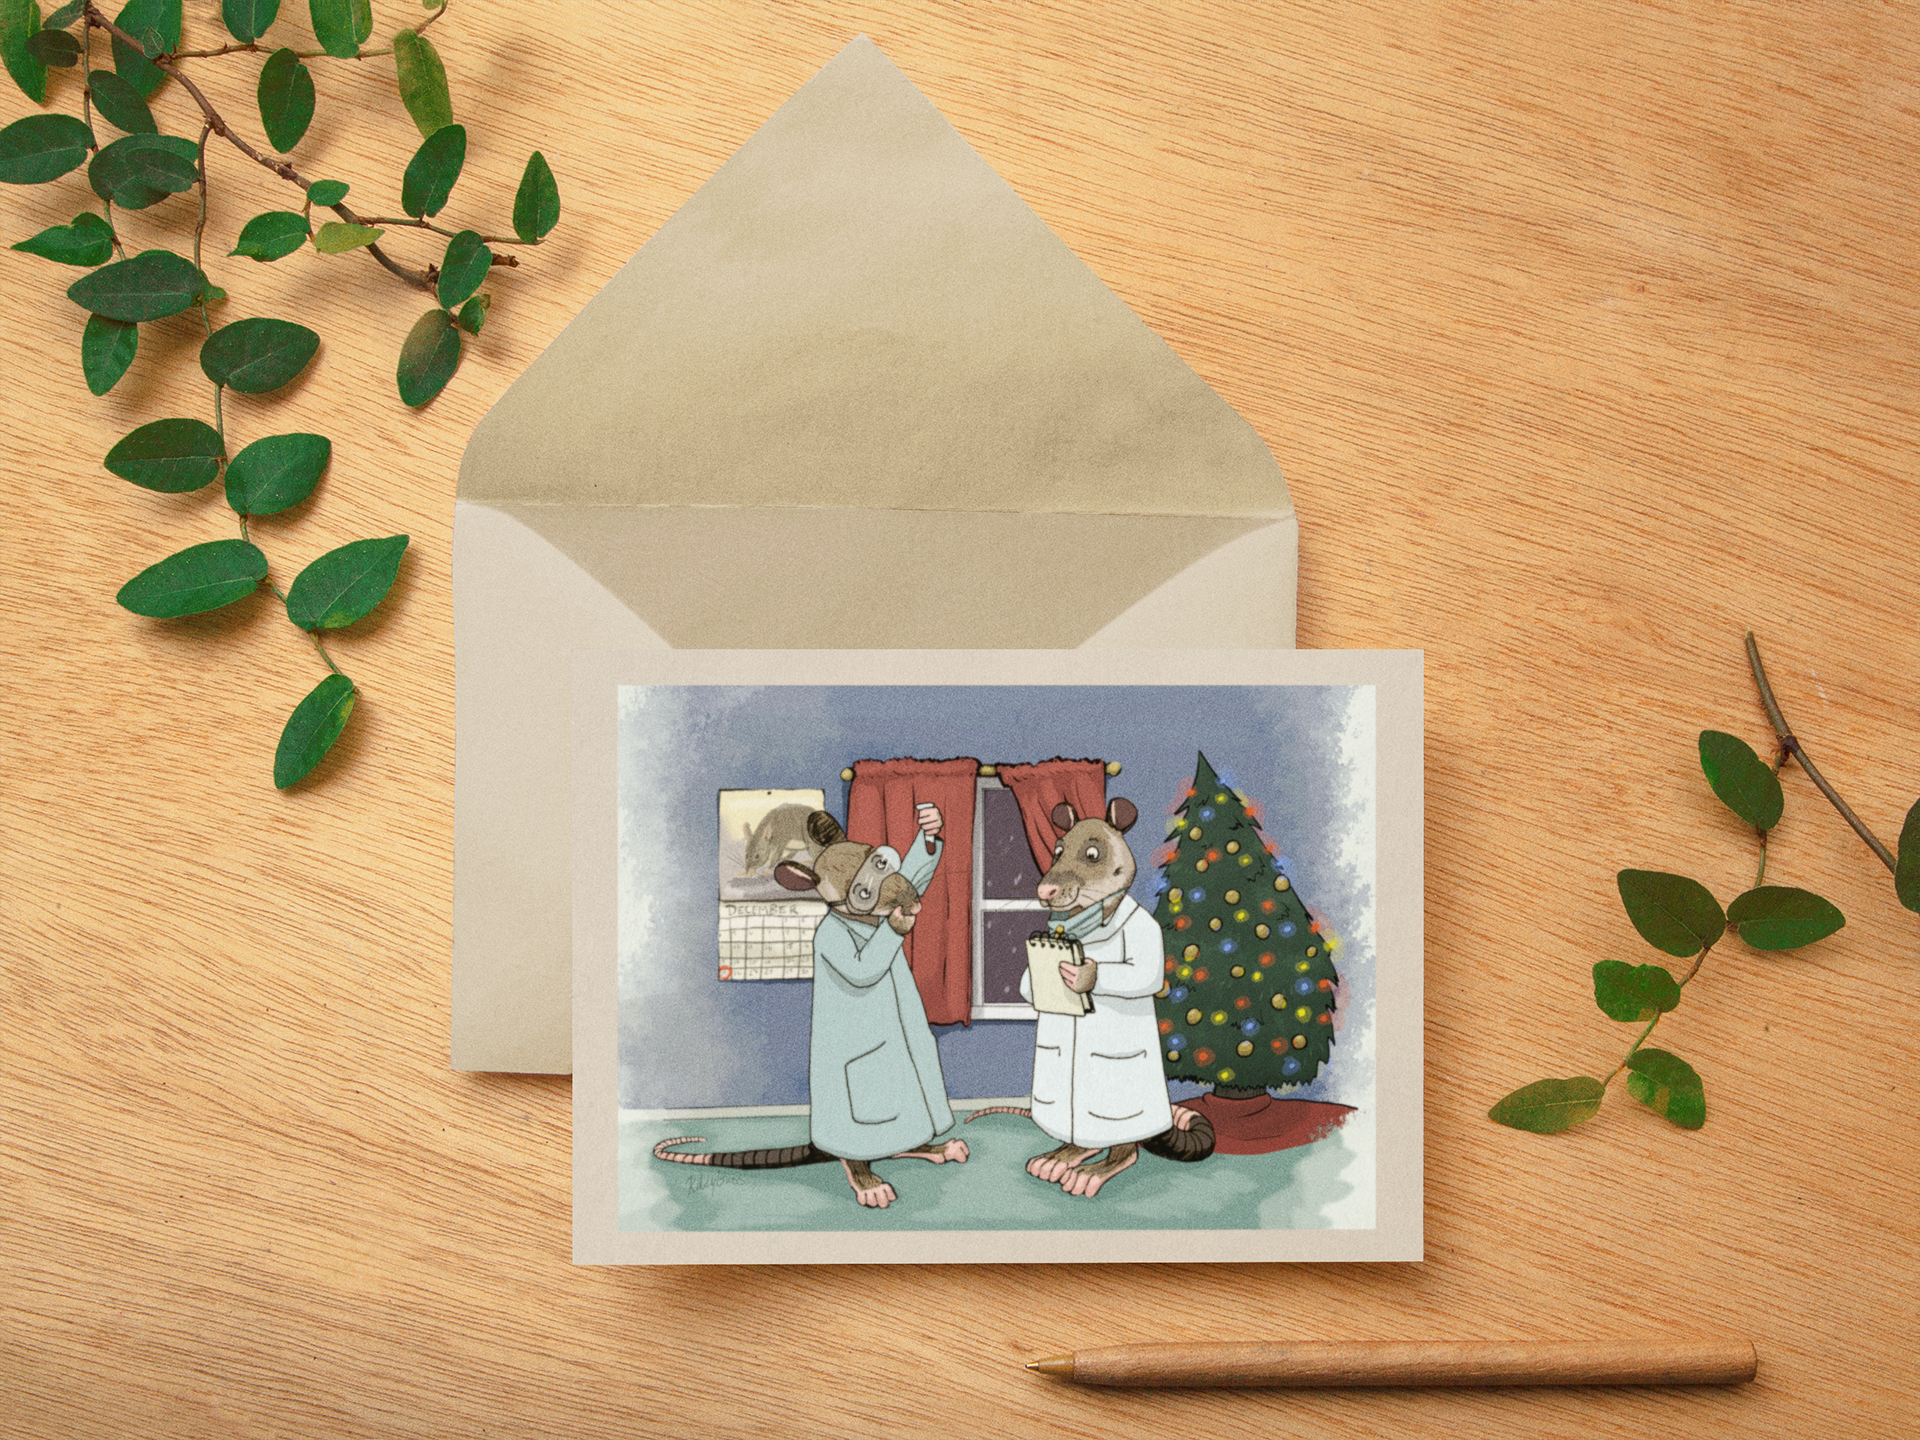 envelope-mockup-featuring-an-open-envelope-on-top-of-a-wooden-desk-a6531.png